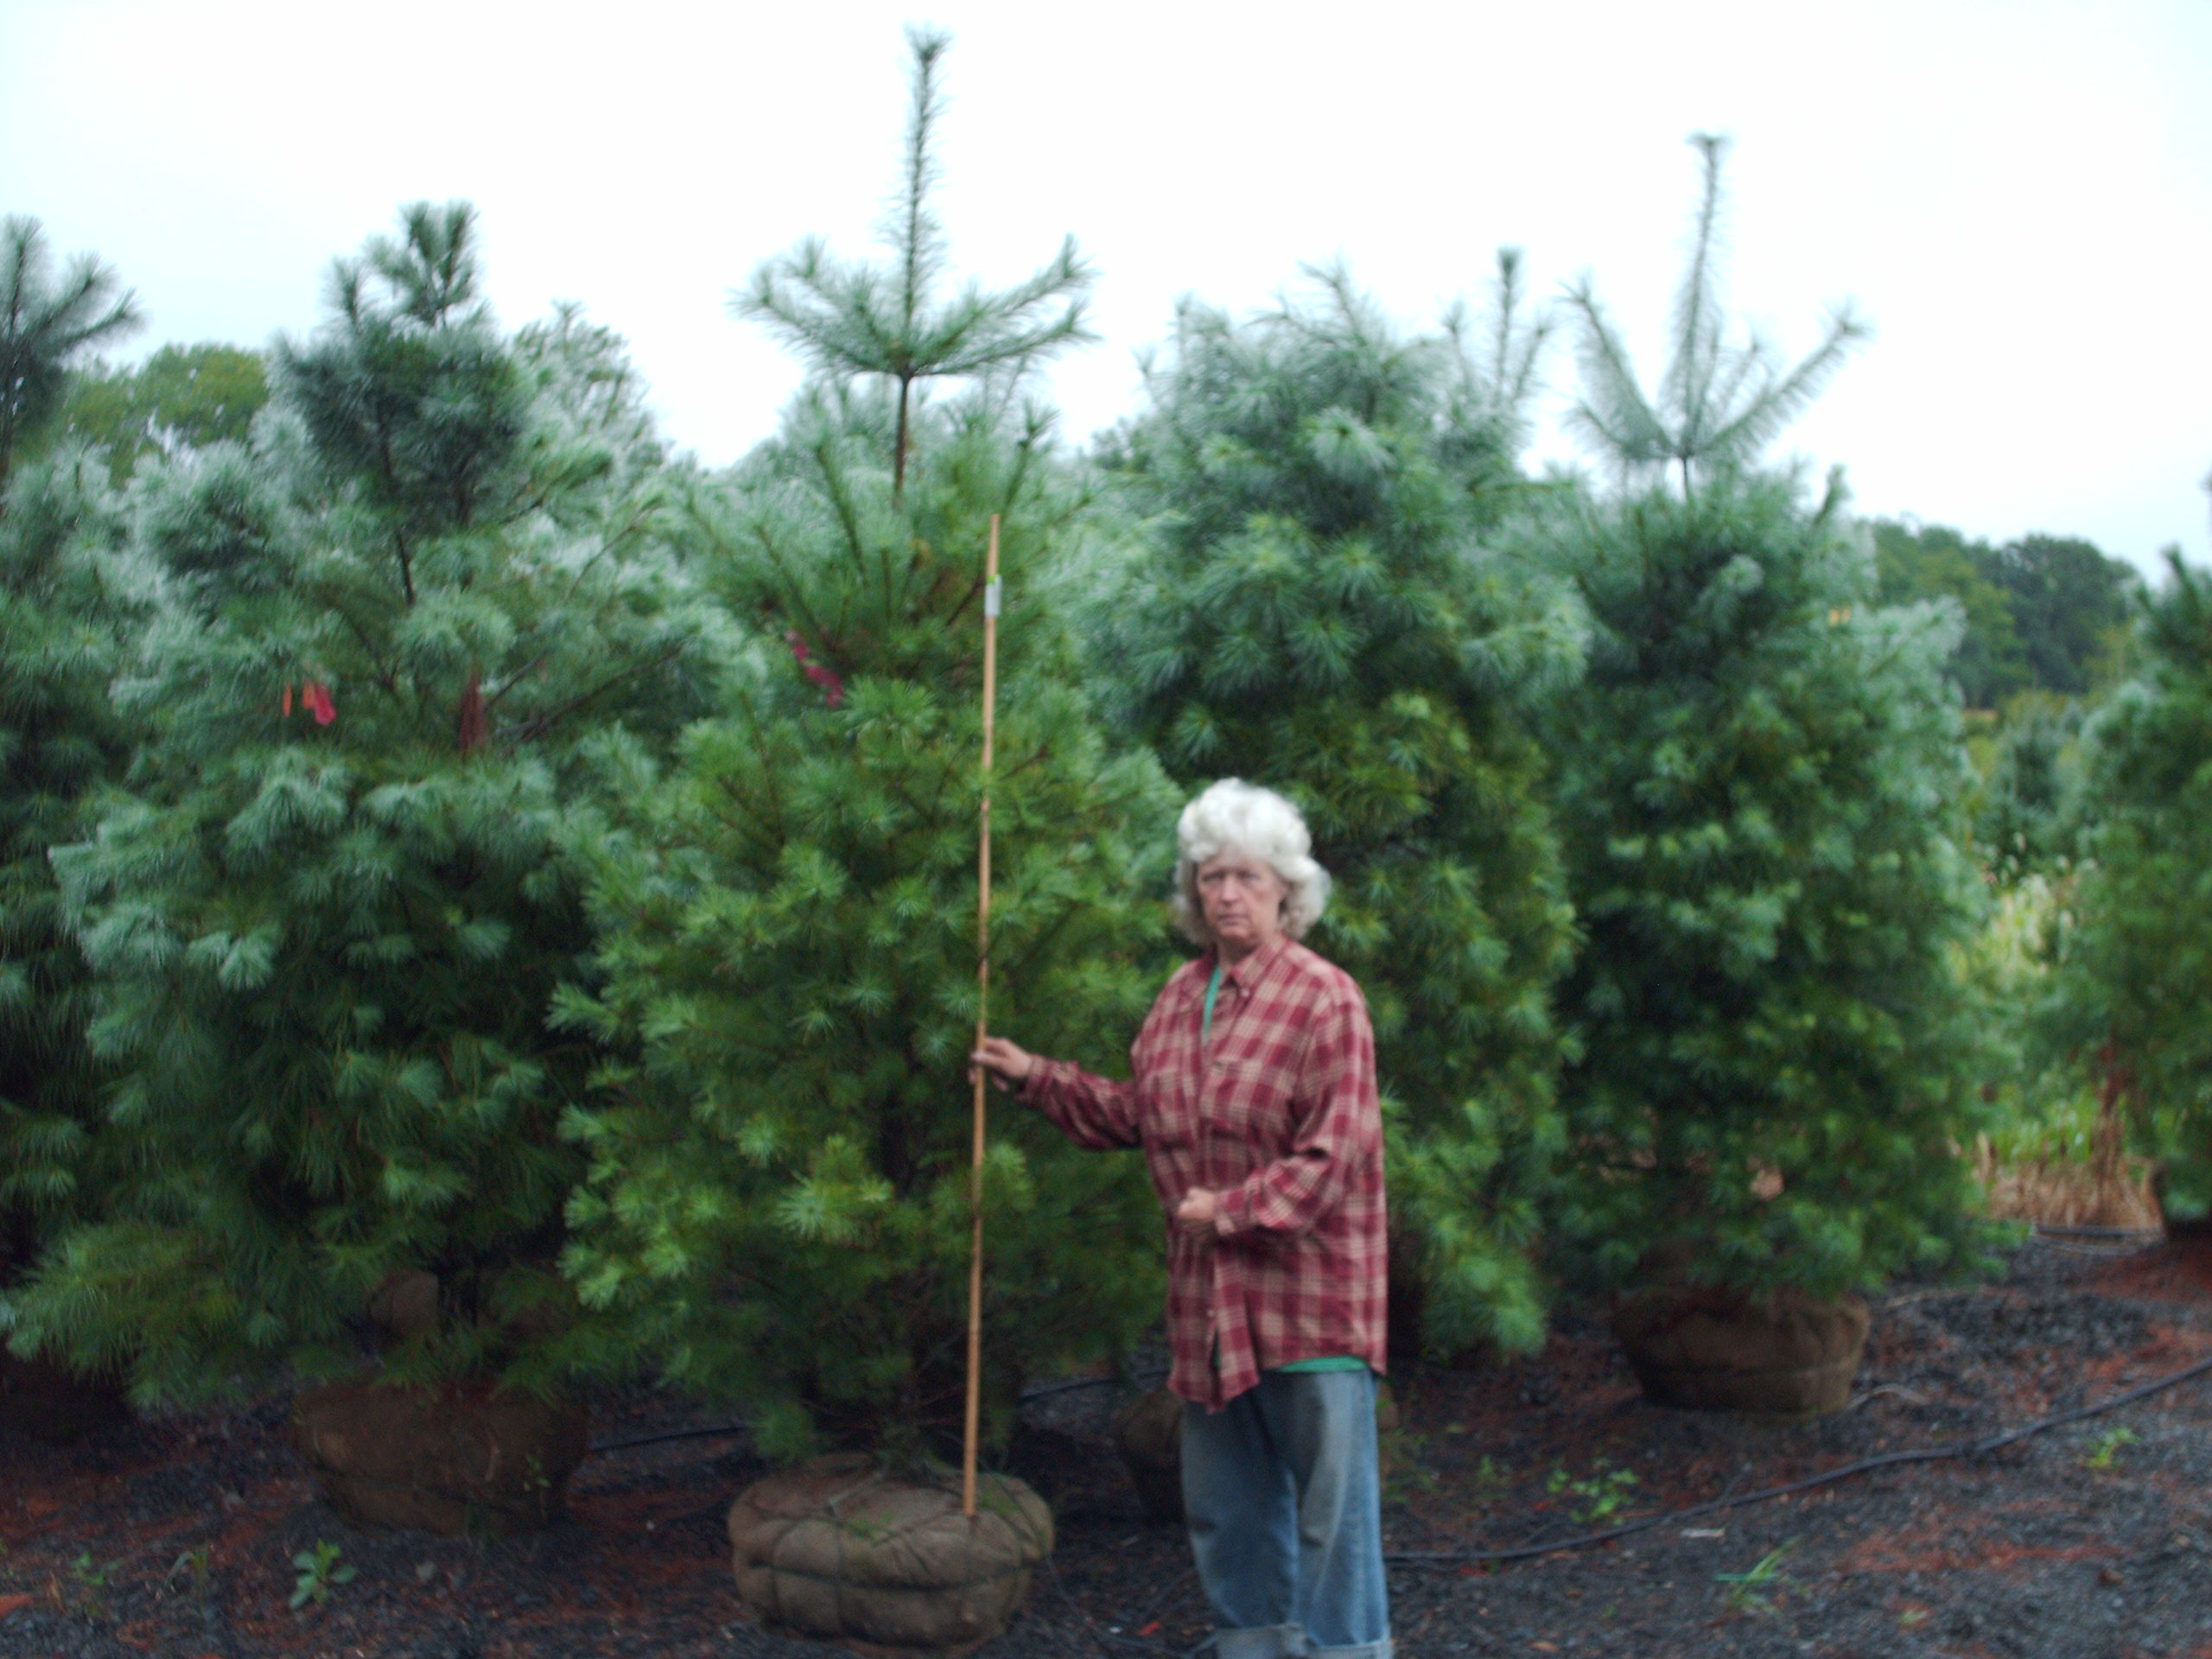 Our 7 ft White Pines.